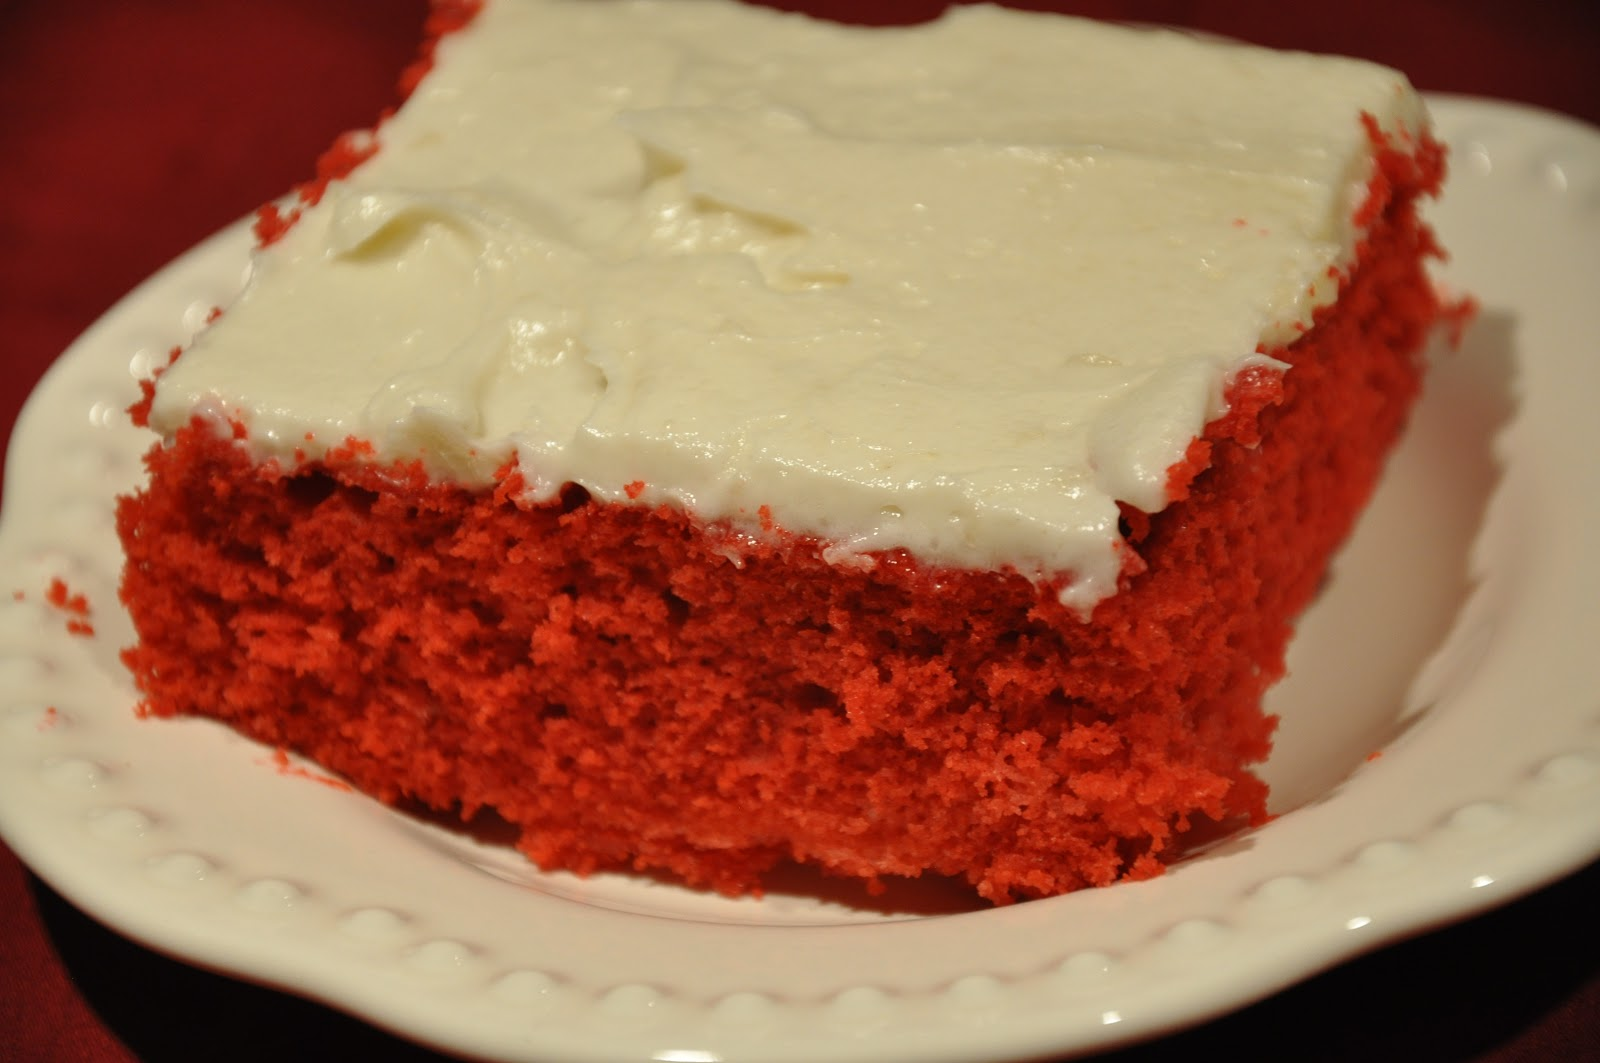 10. Red Velvet Sheet Cake With That's the Best Frosting I've Ever Had!